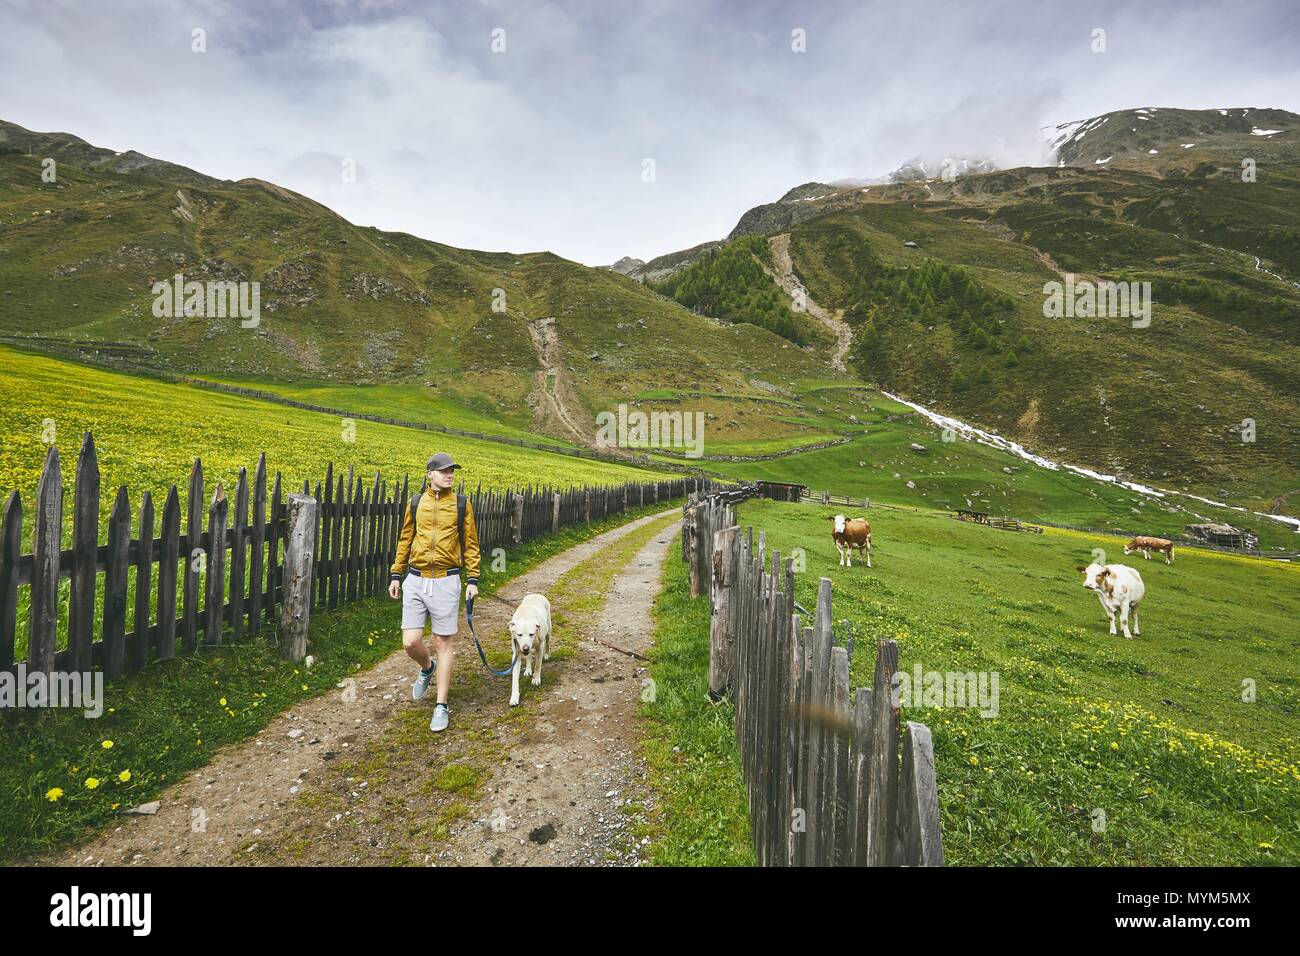 Tourist with dog in countryside. Young man walking with labrador retriever on dirt road. South Tyrol, Italy Stock Photo